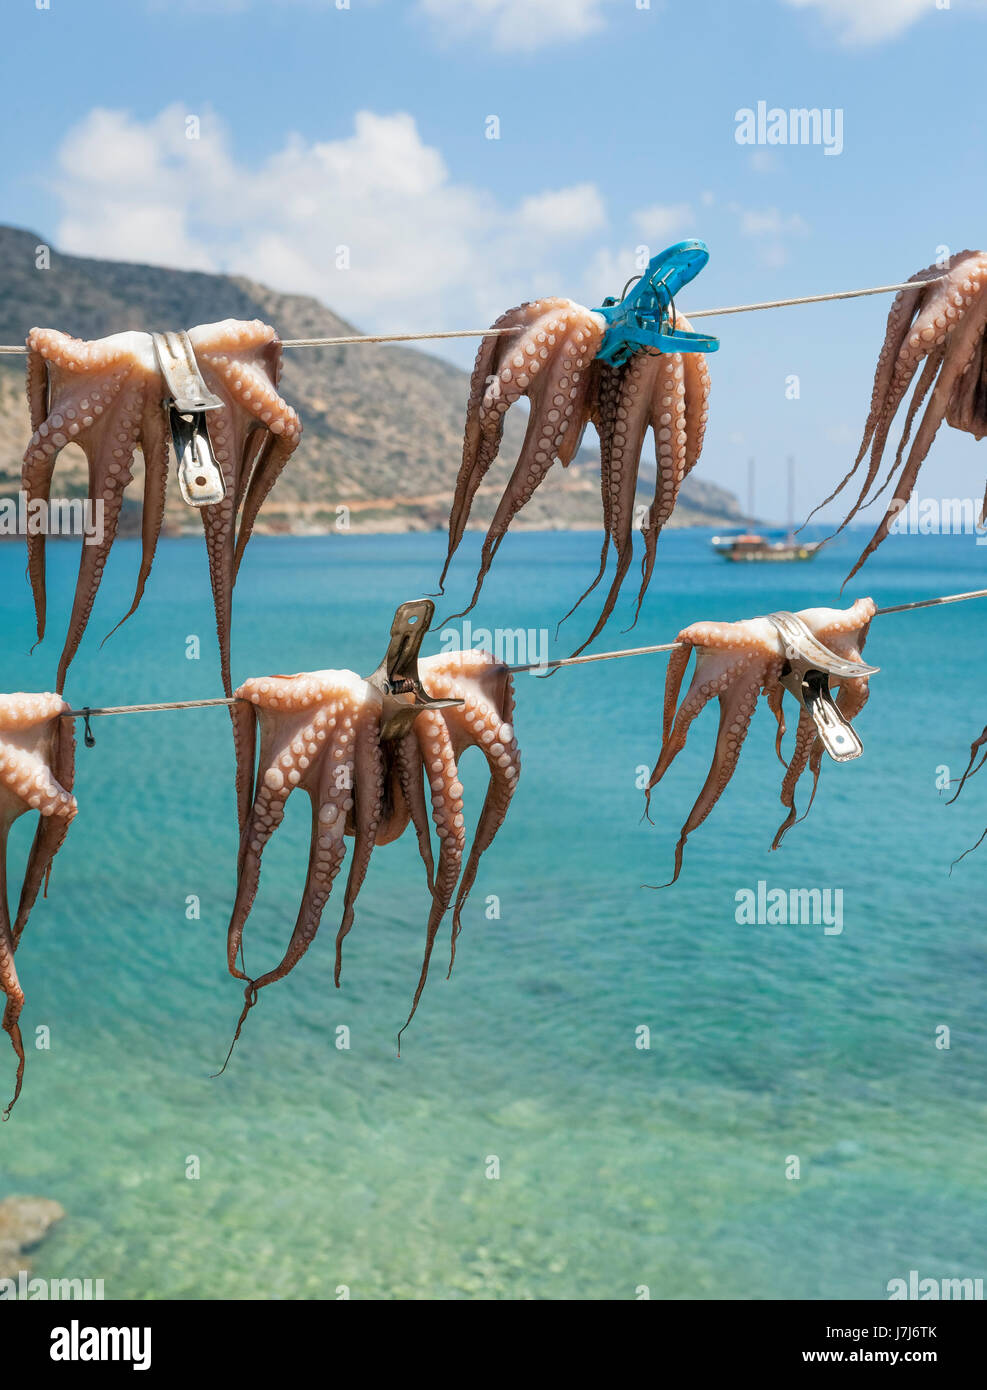 Octopuses hung up to dry on washing lines, Plaka beach, Crete, Greece, Europe - Stock Image